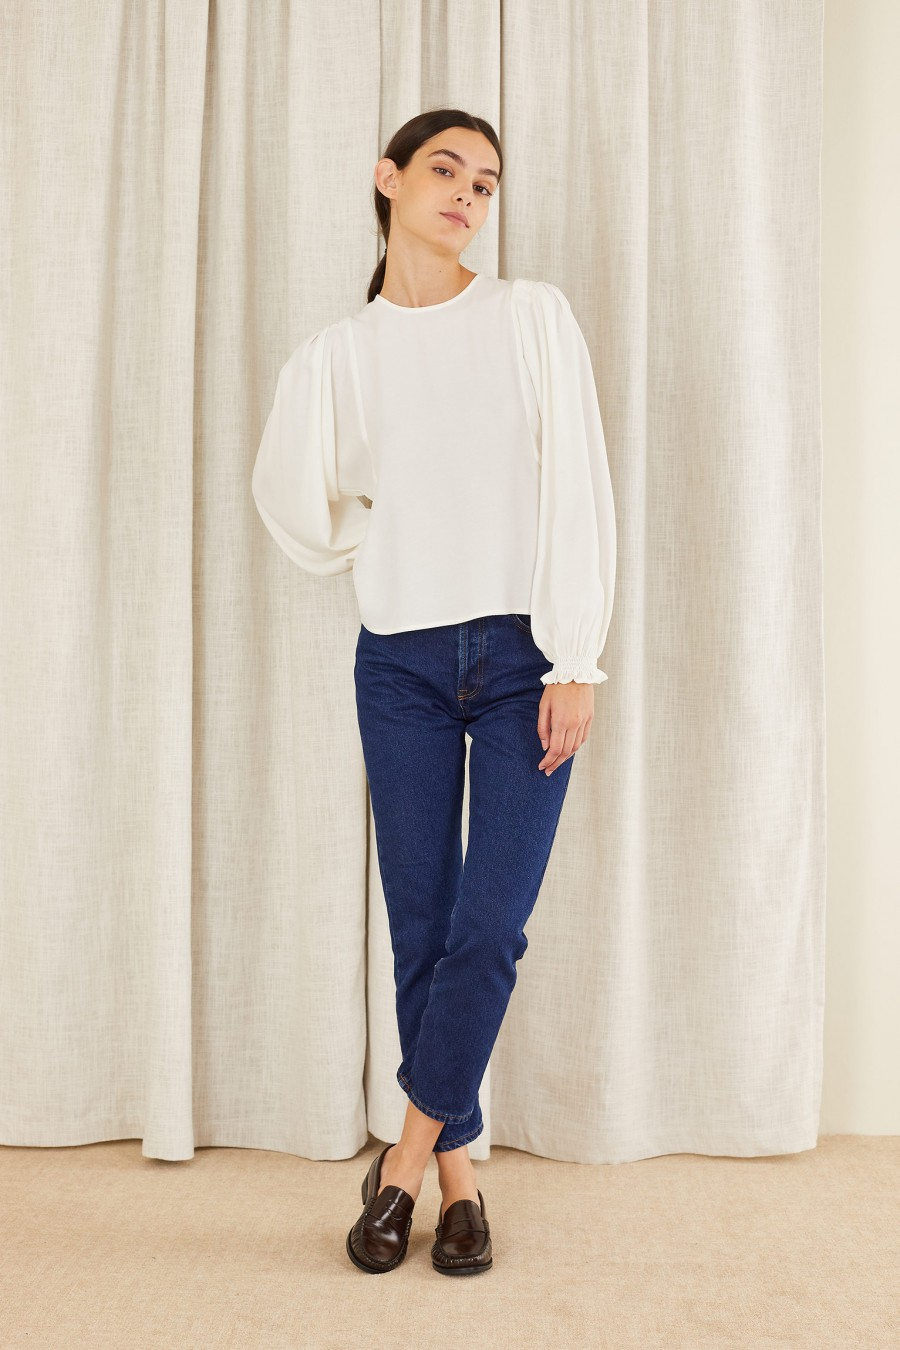 Wide sleeves top with gathered cuffs